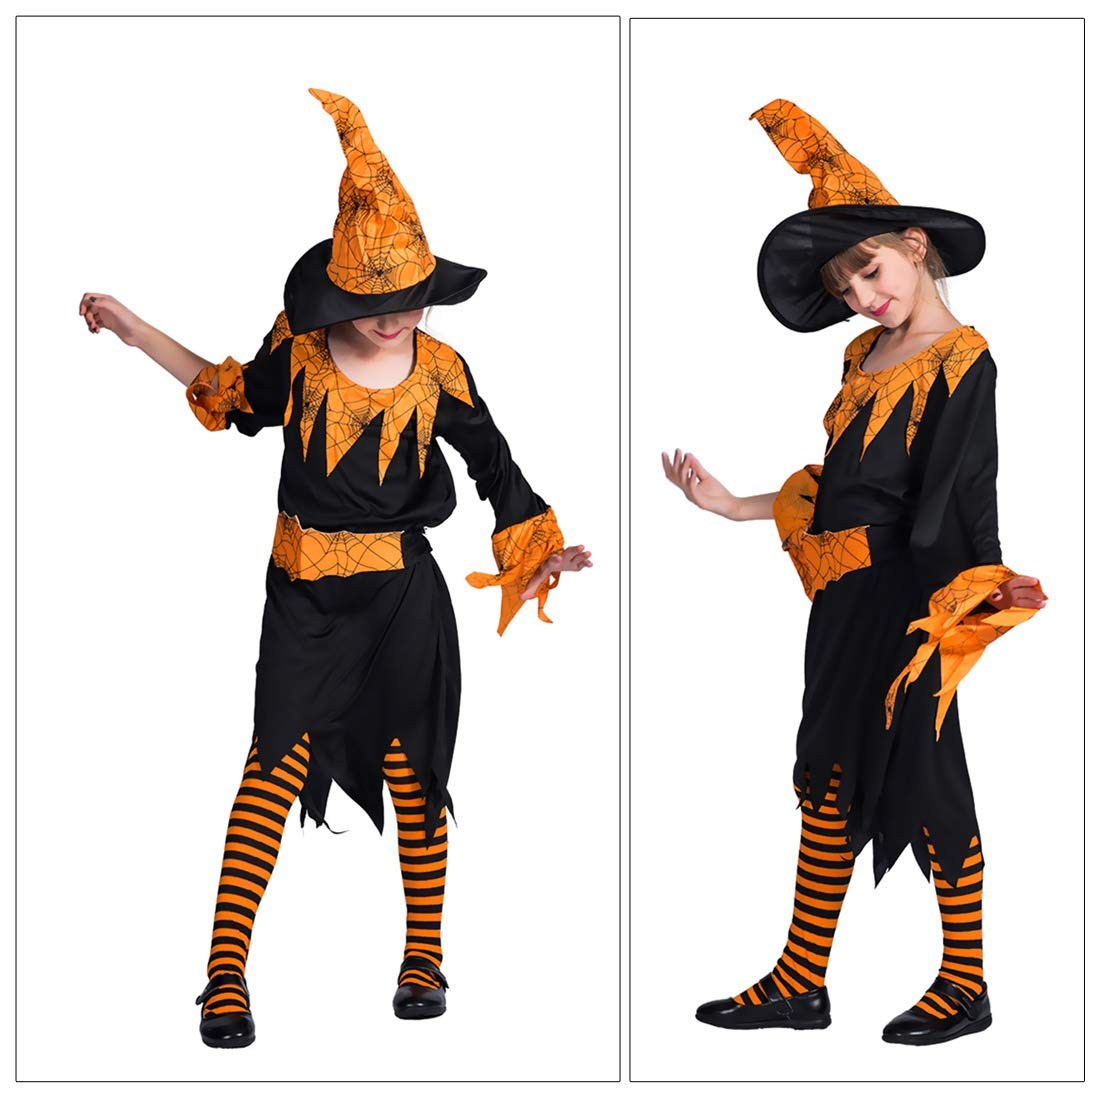 Little Girls Long Sleeve Halloween Pumpkin Witch Dress Up Set Cosplay Outfit L for 12-14 Y by Eraspooky (Image #6)